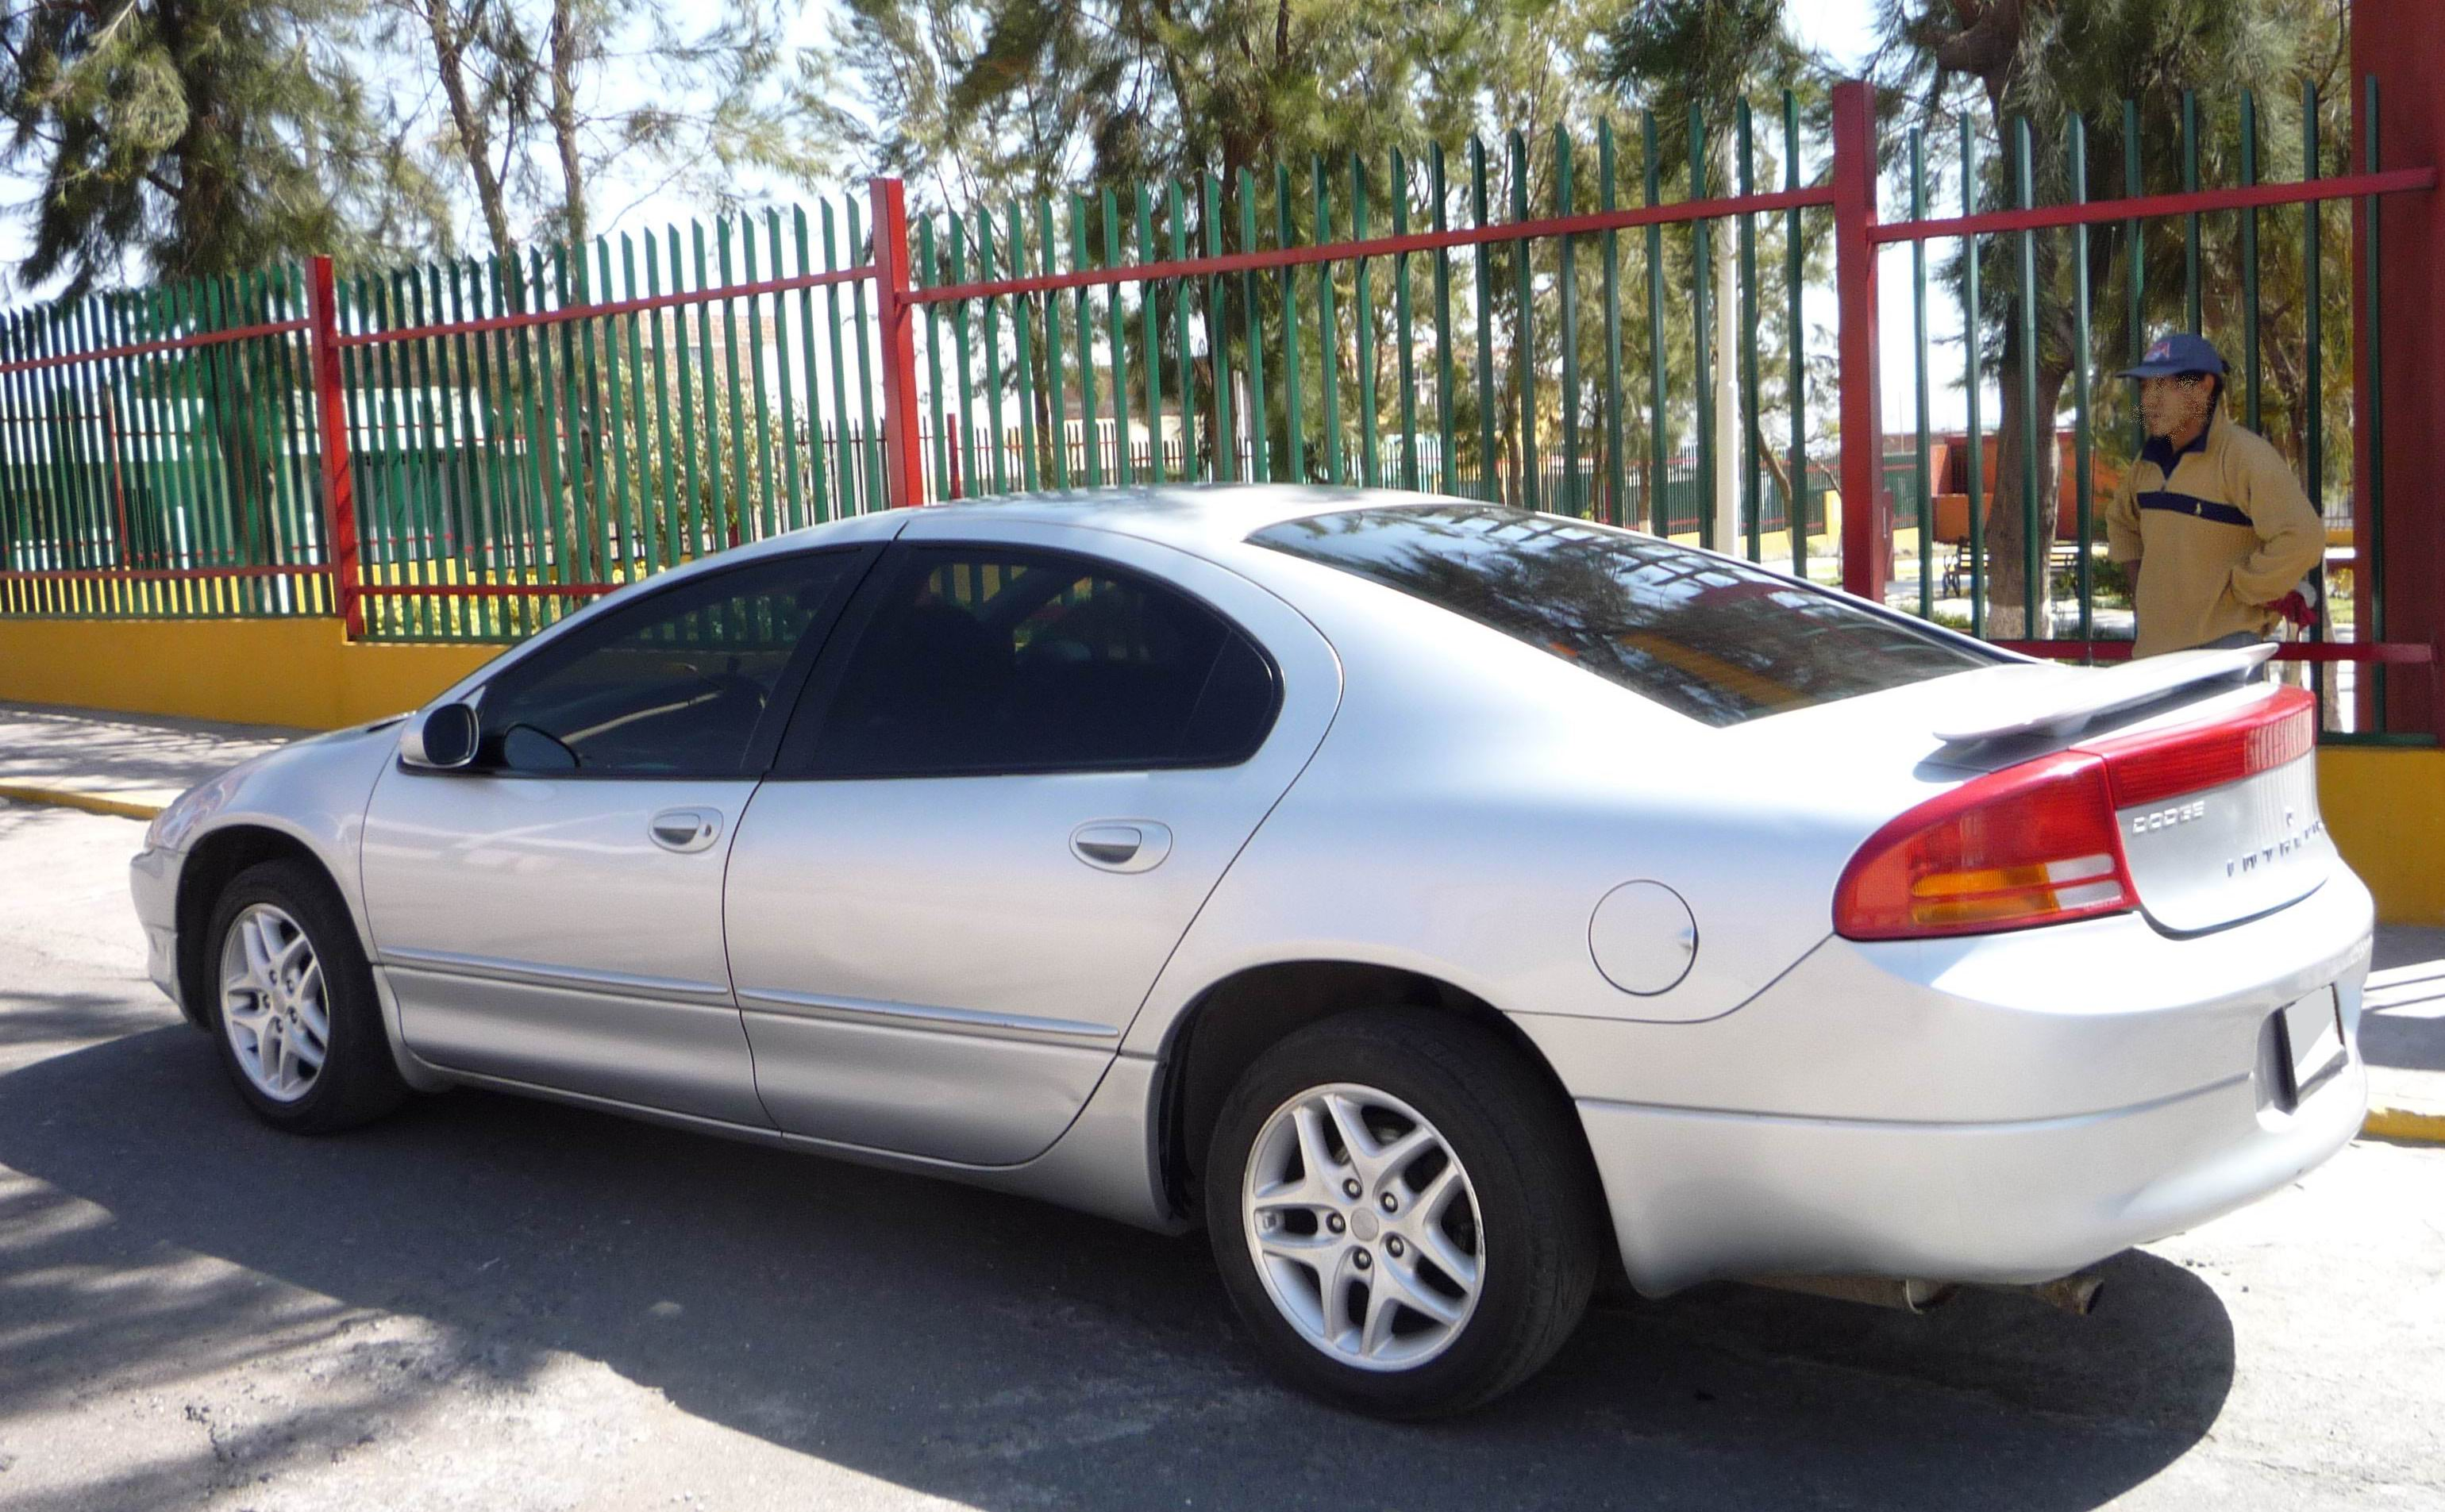 2002 Dodge Intrepid #3